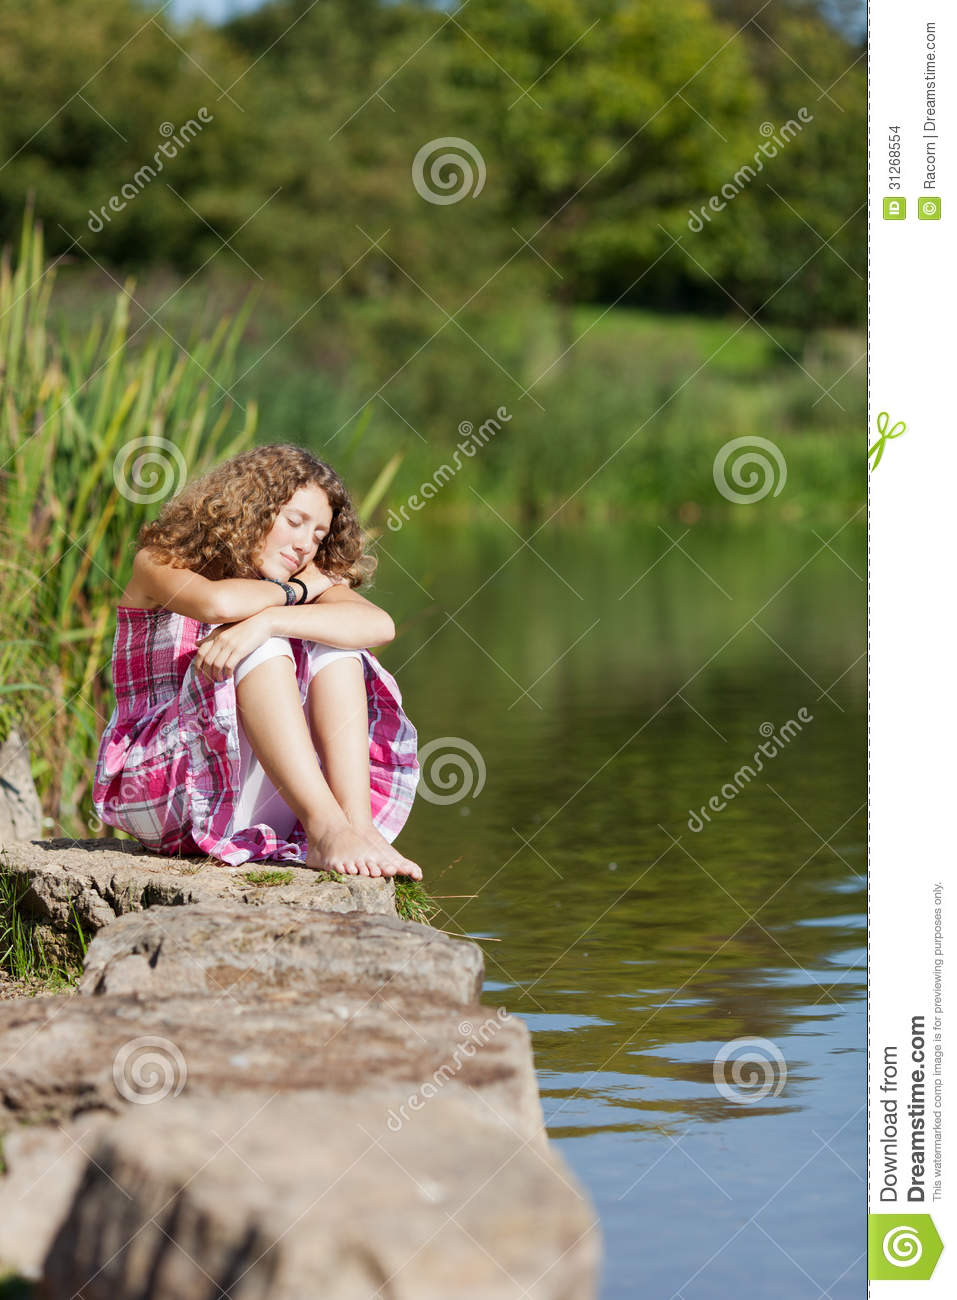 LustyGuide for Girl sitting on rock into